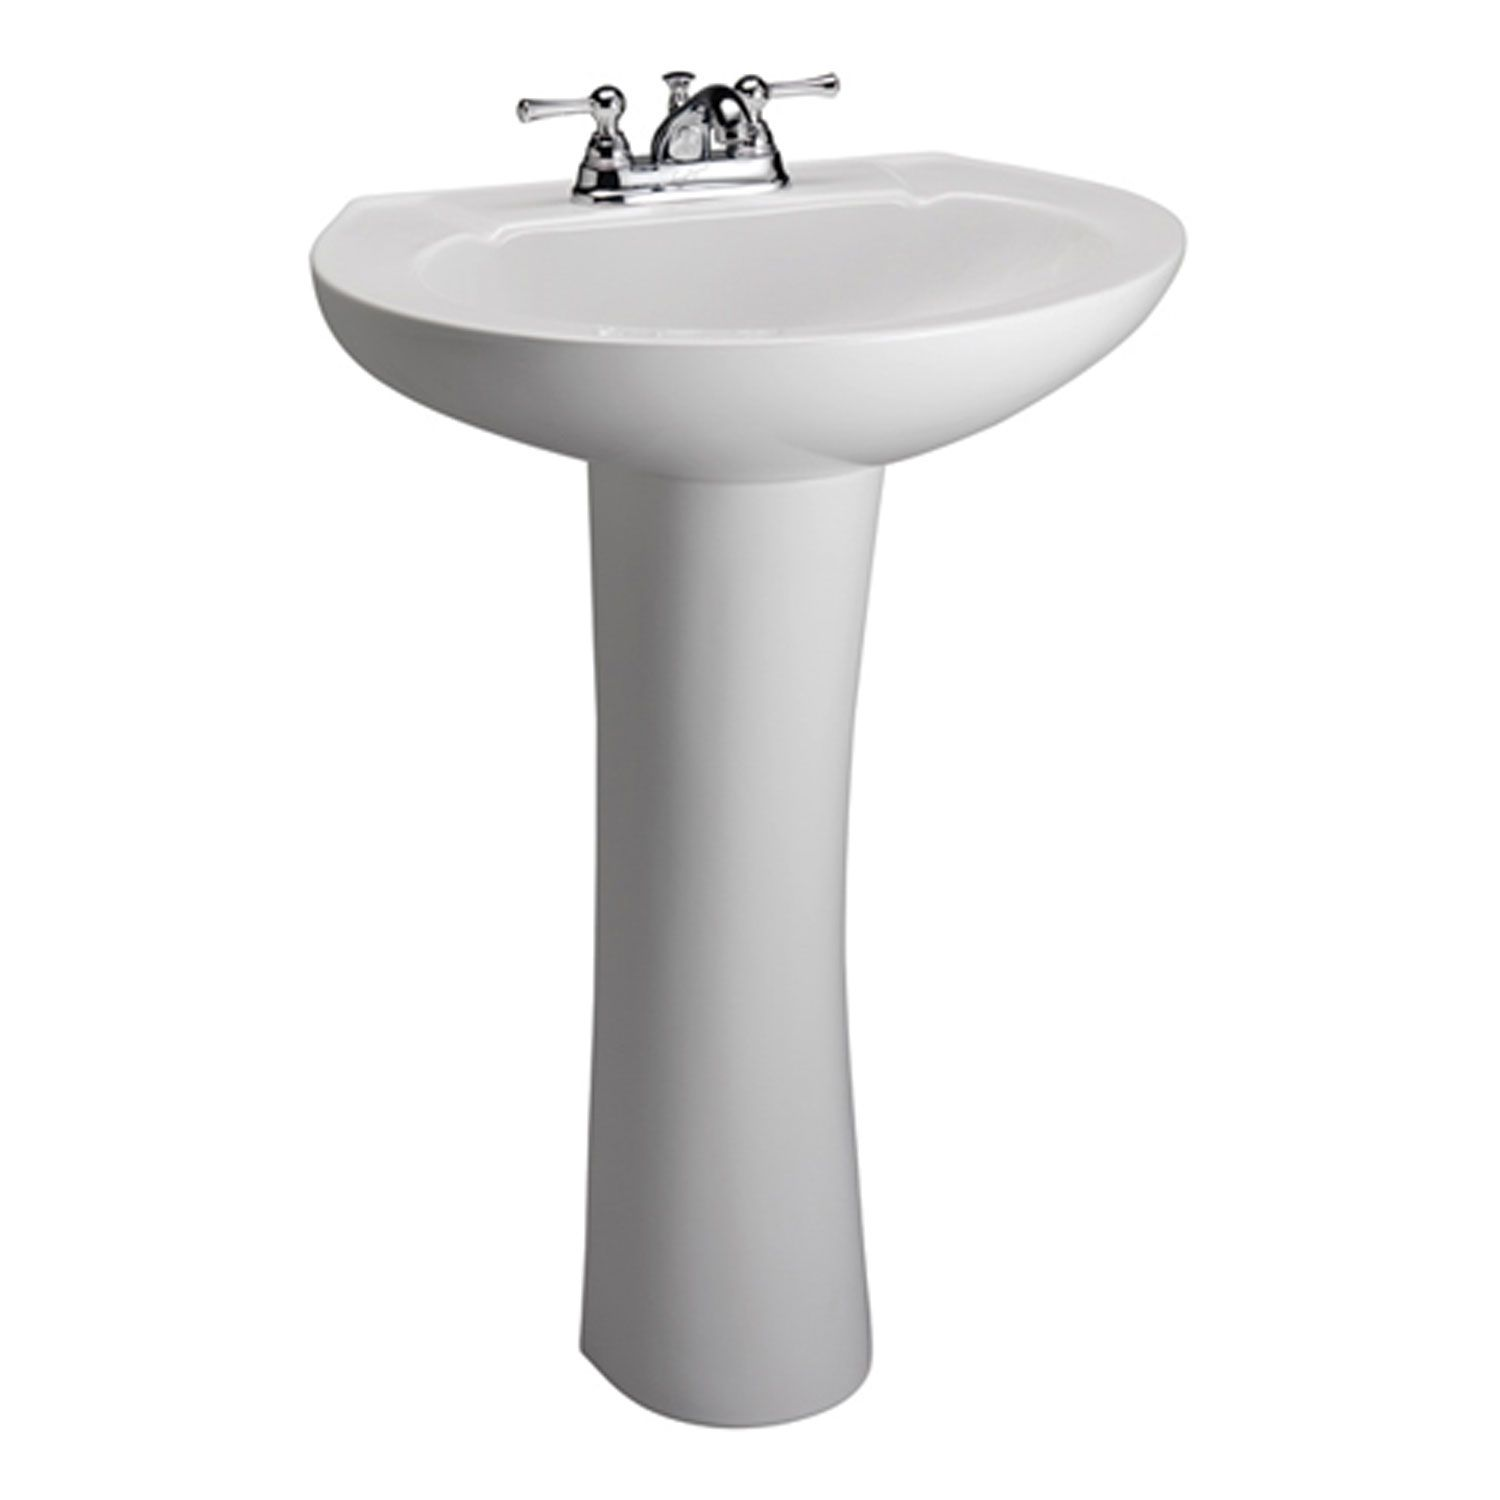 Barclay Products Hampshire 450 Pedestal Sink 3 201wh Pedestal